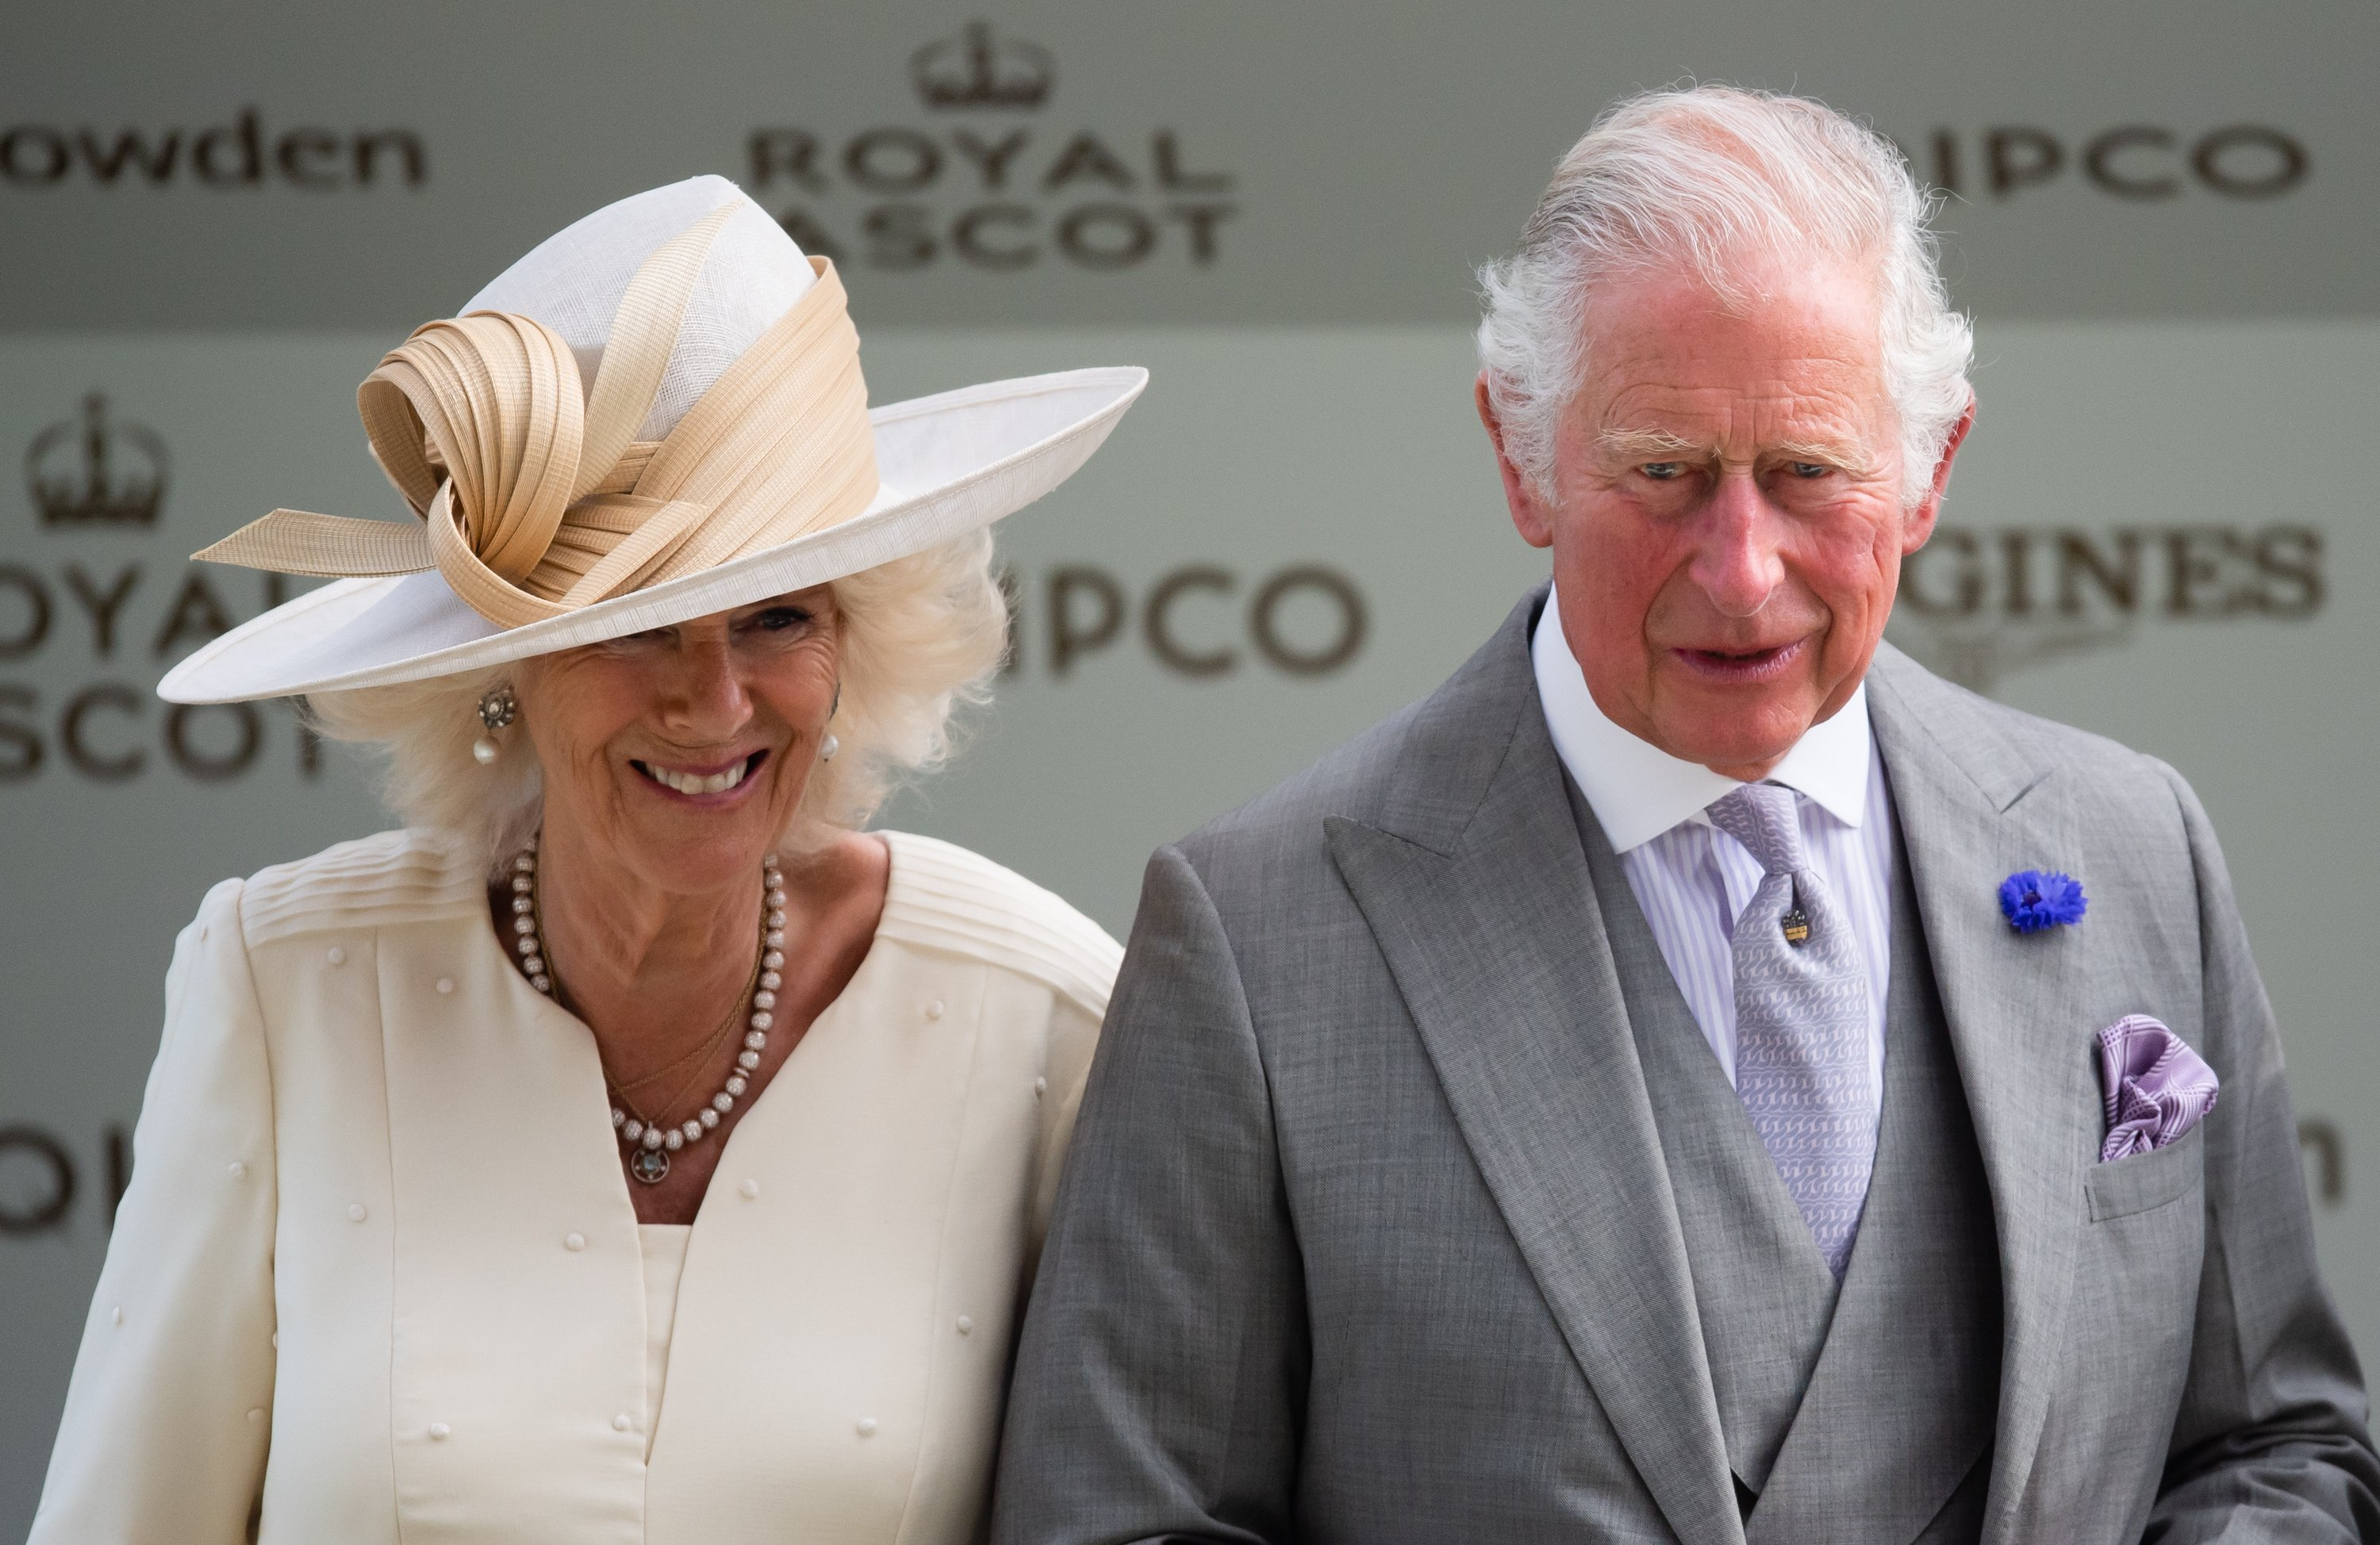 Camilla, Duchess of Cornwall and Prince Charles, Prince of Wales attend Royal Ascot 2021 at Ascot Racecourse on June 16, 2021 in Ascot, England.   Source: Getty Images